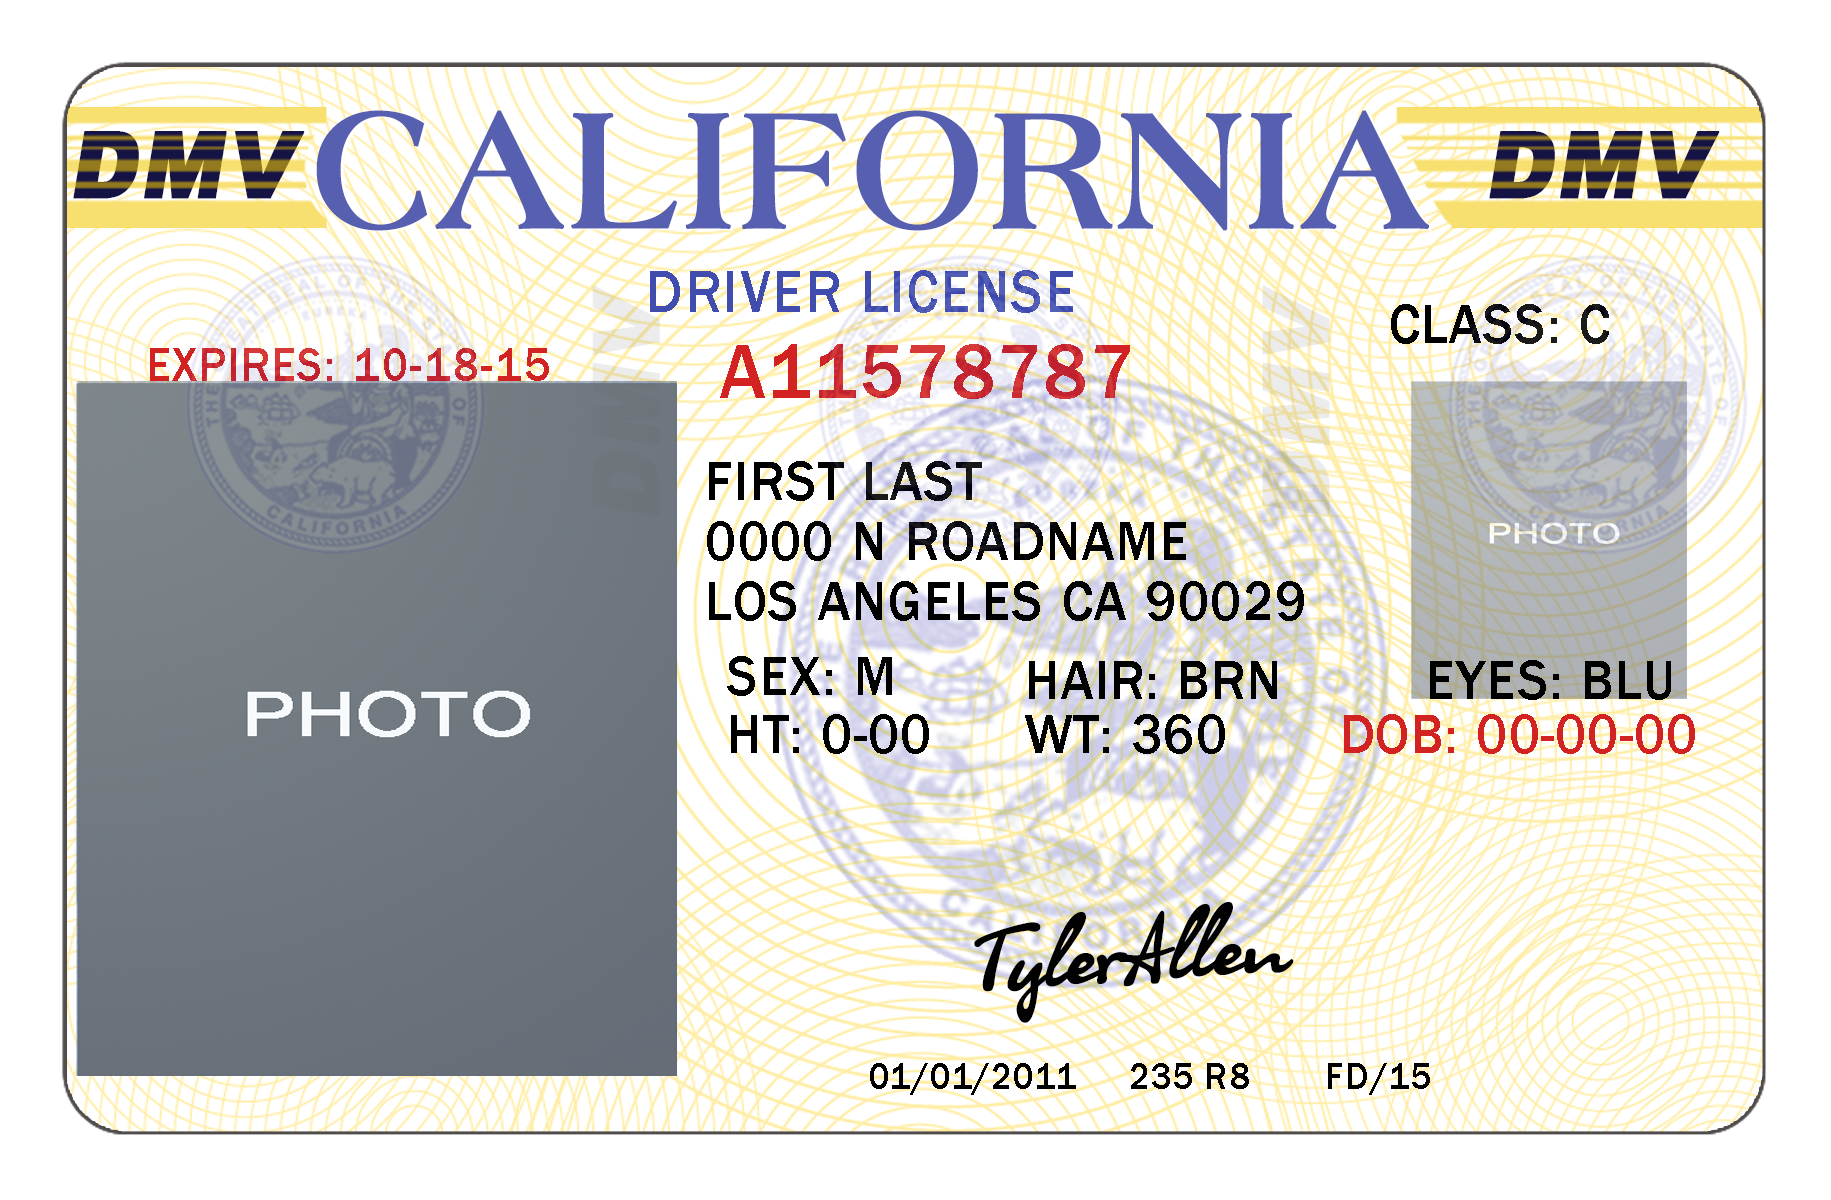 Template california drivers license editable photoshop file .psd